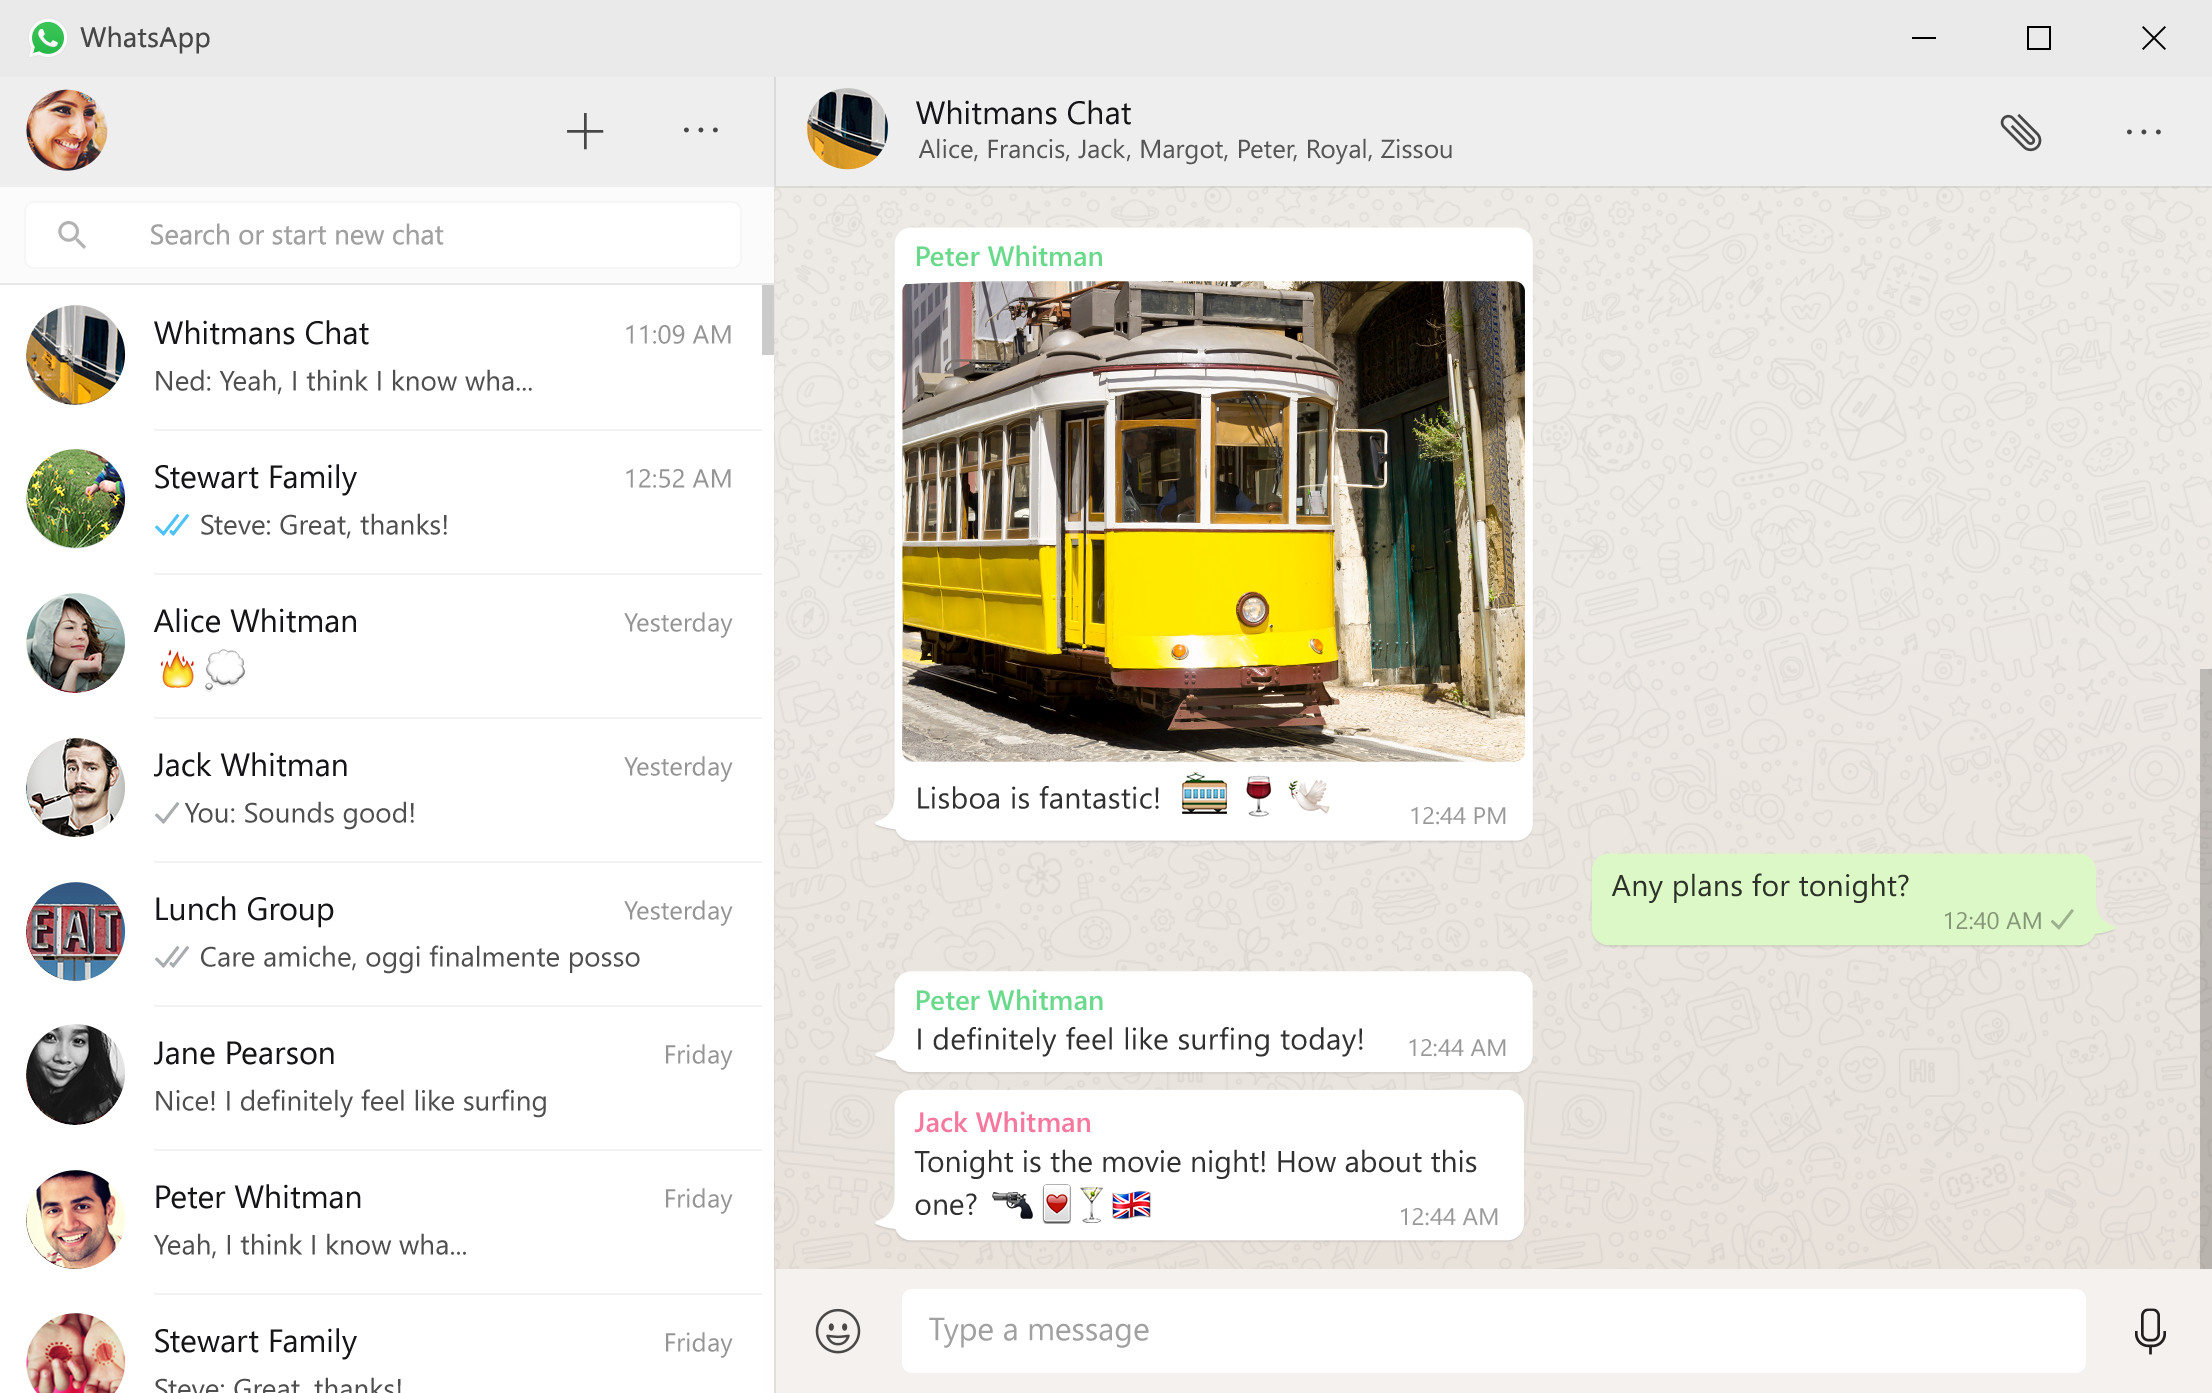 wersm-whatsapp-launches-official-desktop-app-for-mac-and-windows-img